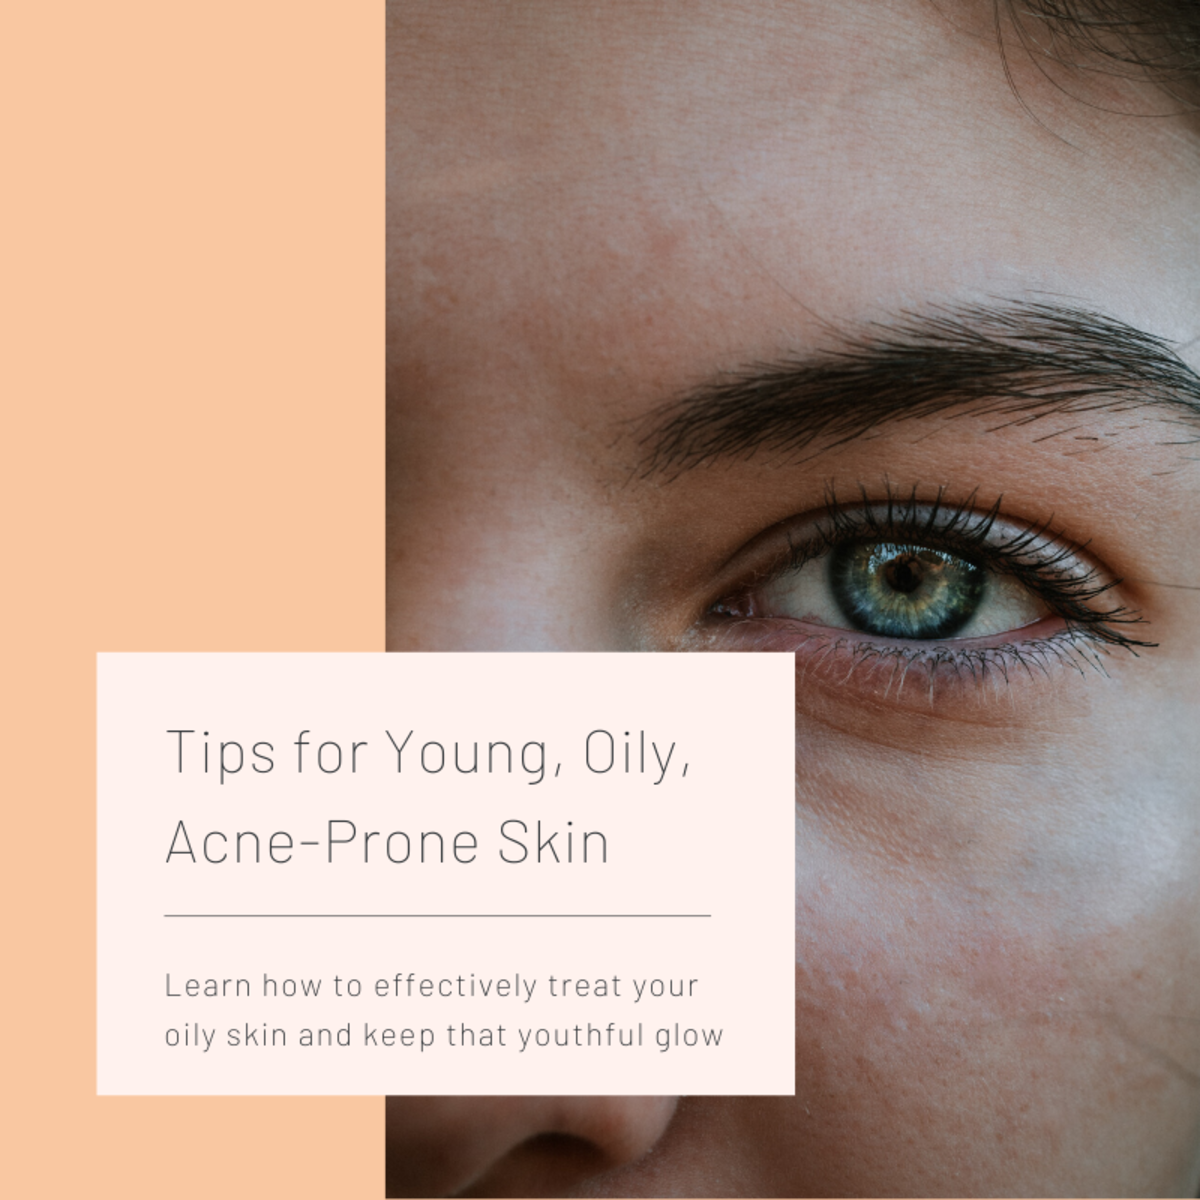 How to Treat Young, Oily, Acne-Prone Skin